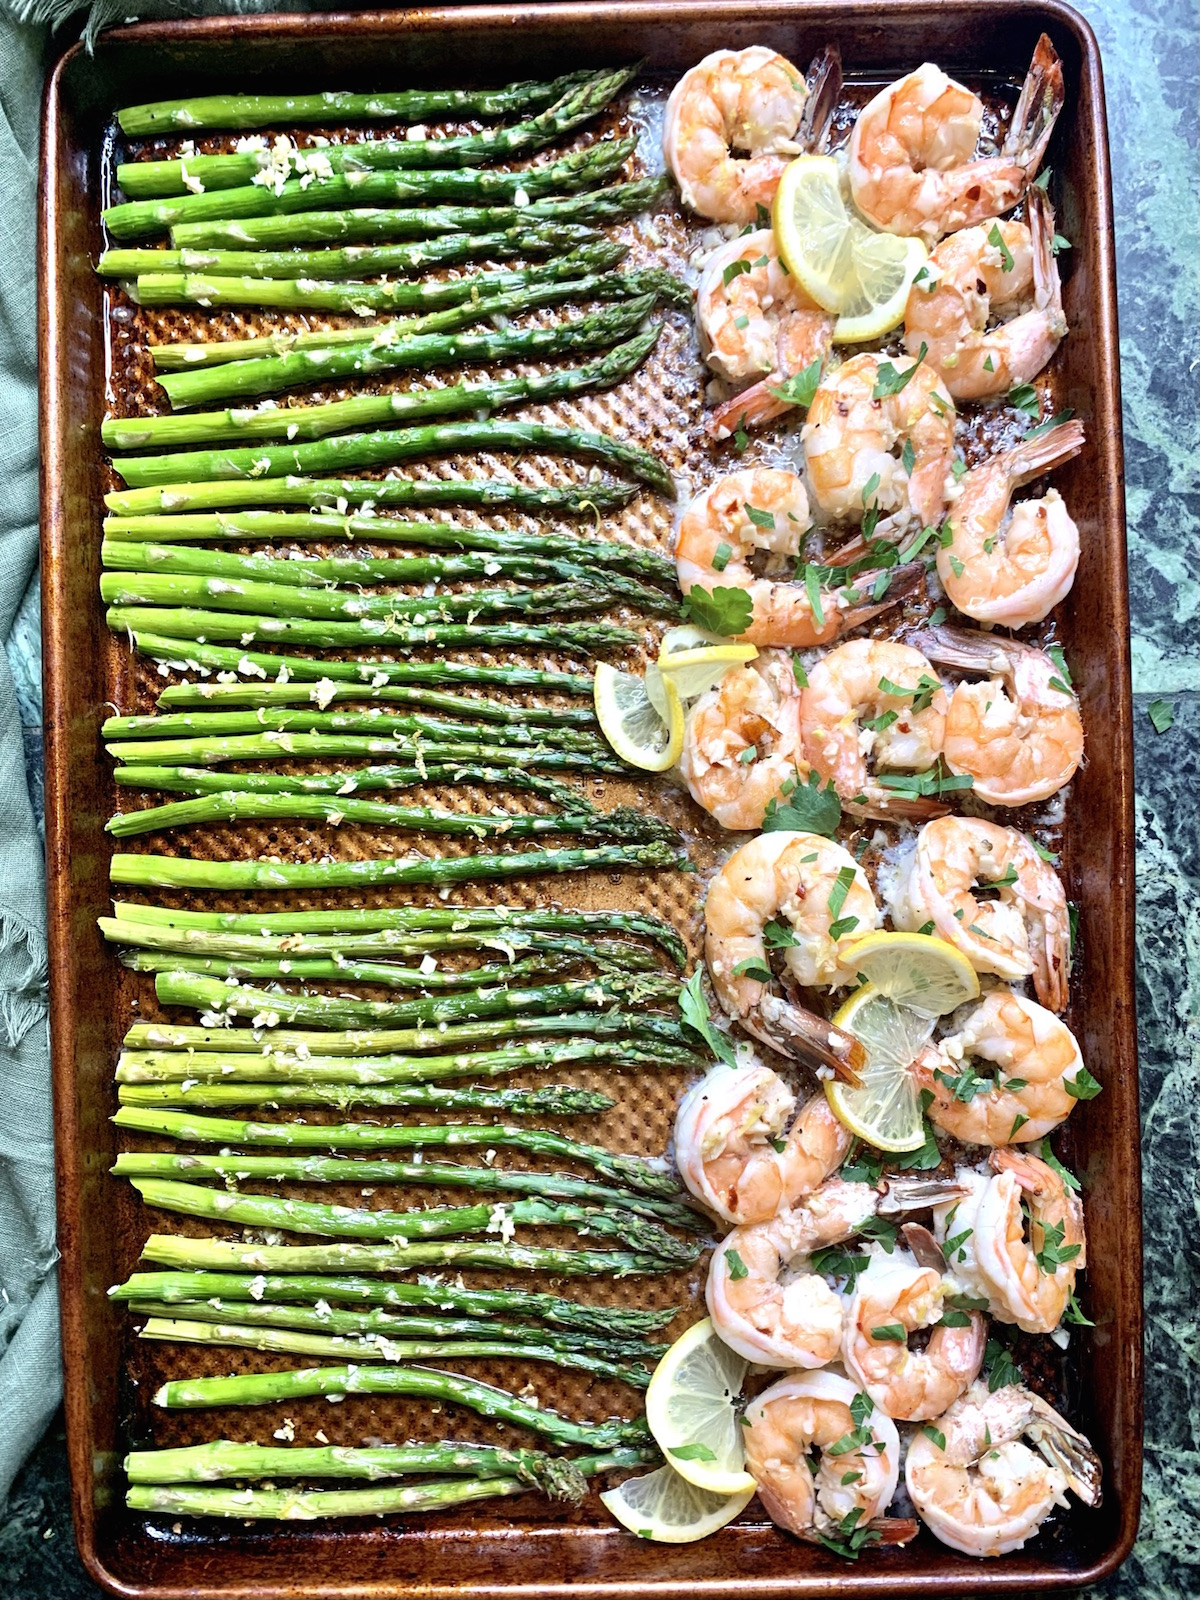 sheet pan with shrimp and asparagus with lemon slices and a green napkin on the side